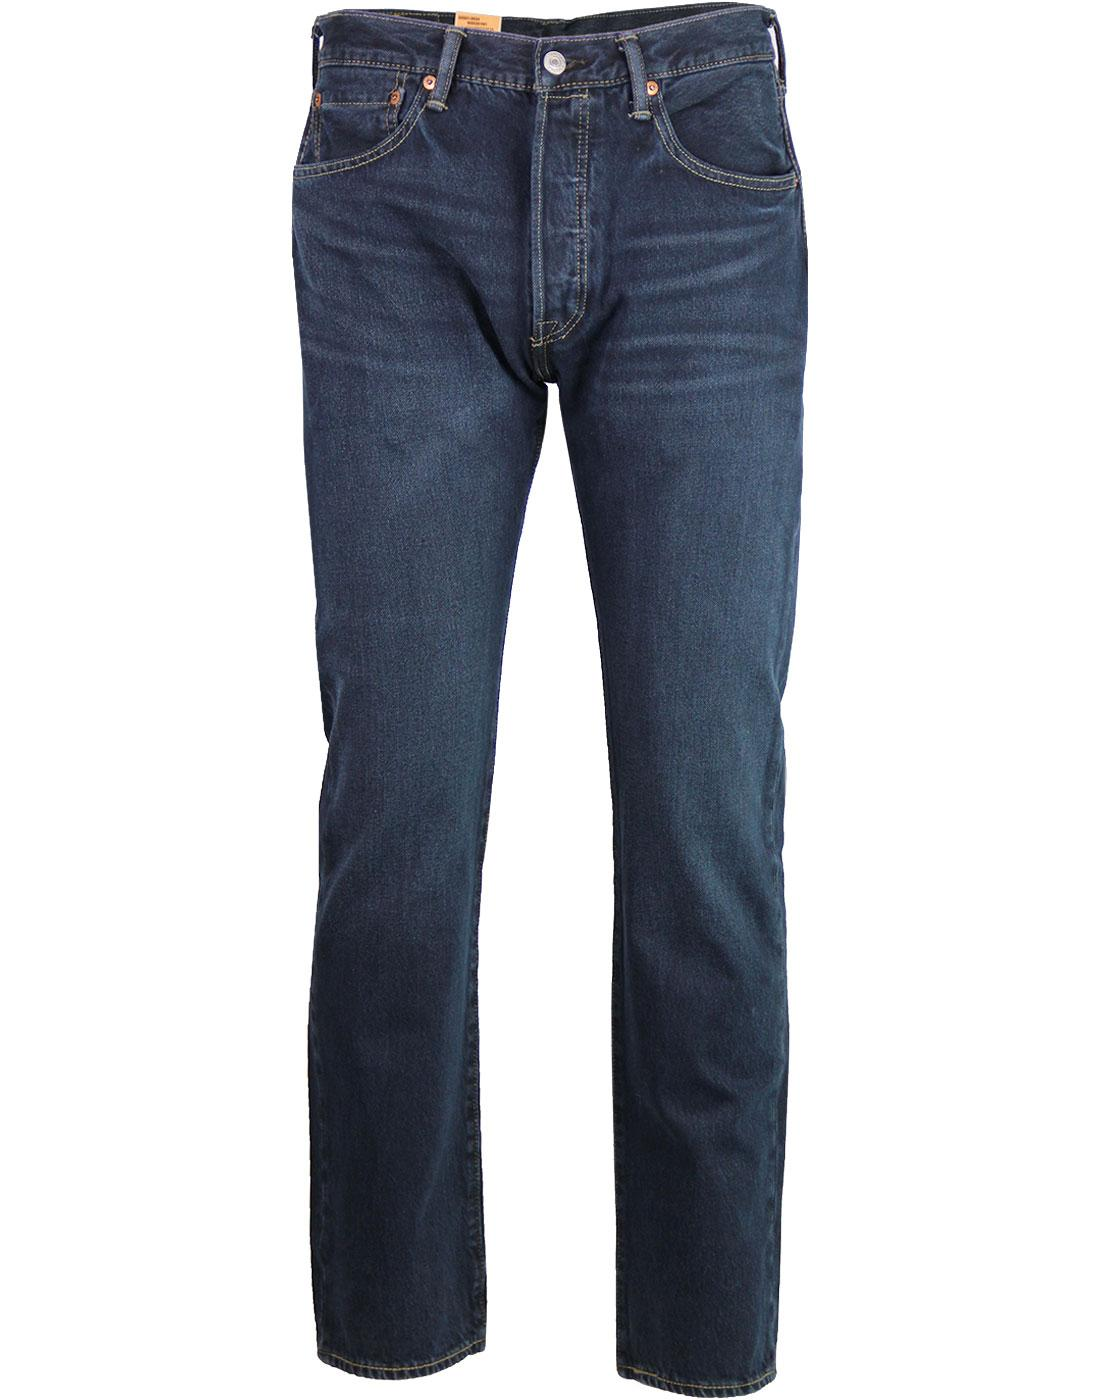 LEVI'S 501 Original Straight Jeans DARK HOURS